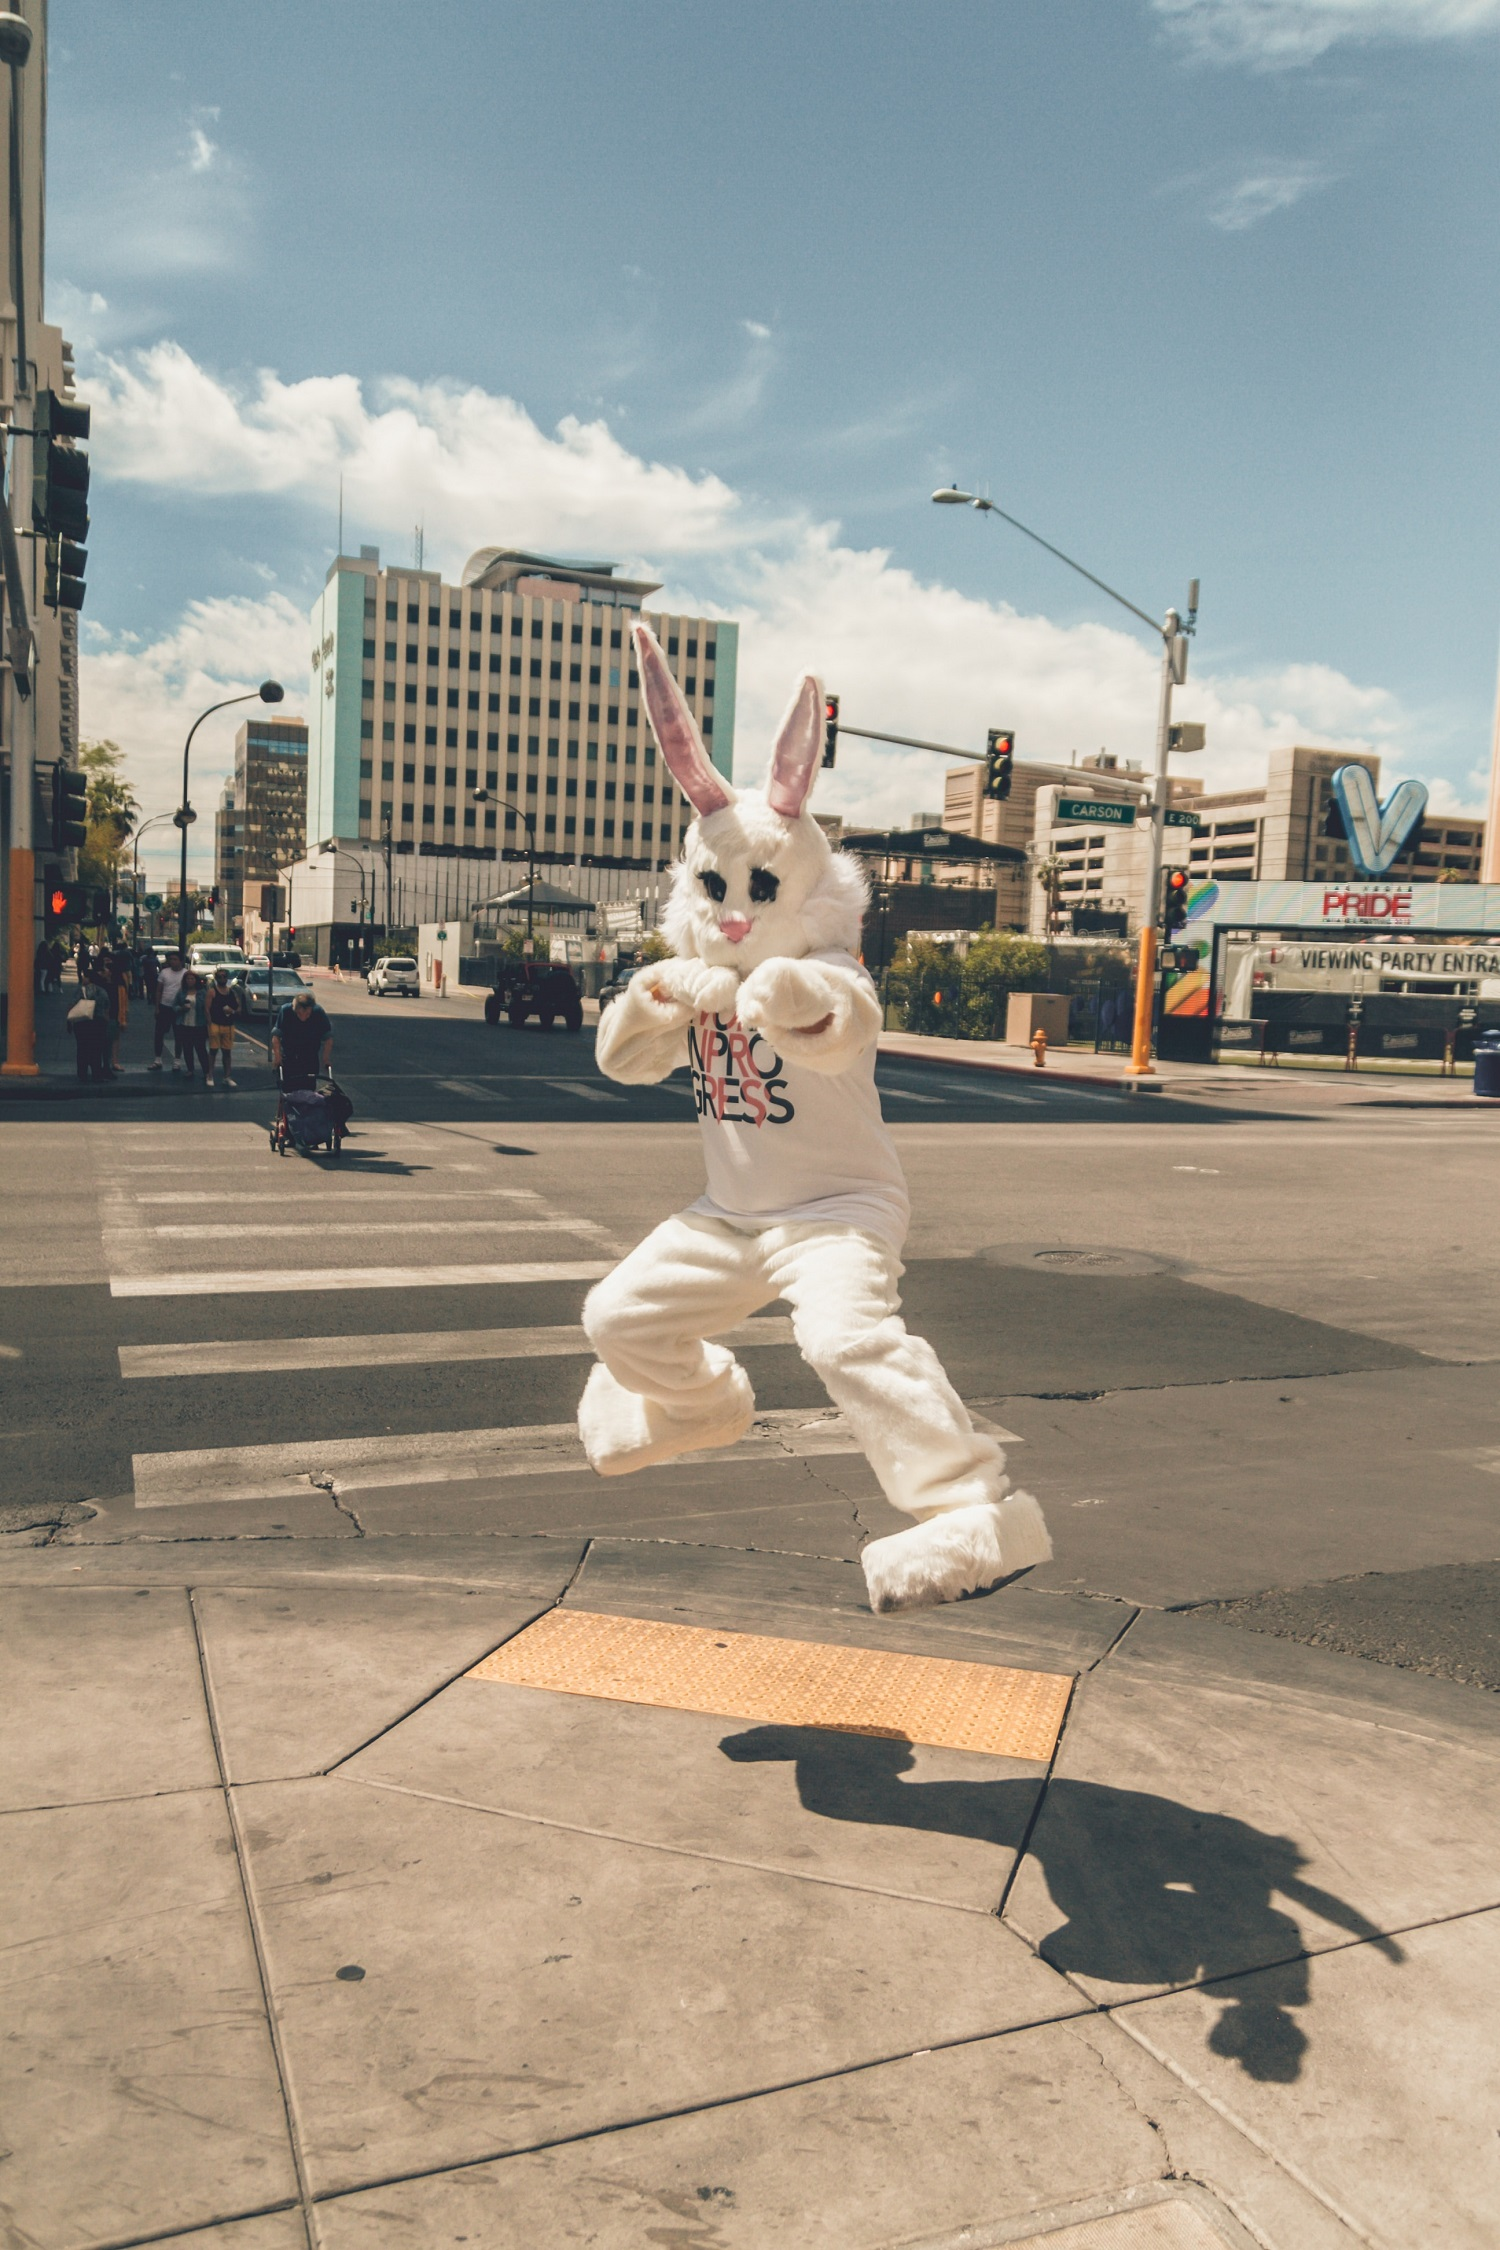 cool event promotion ideas - mascot